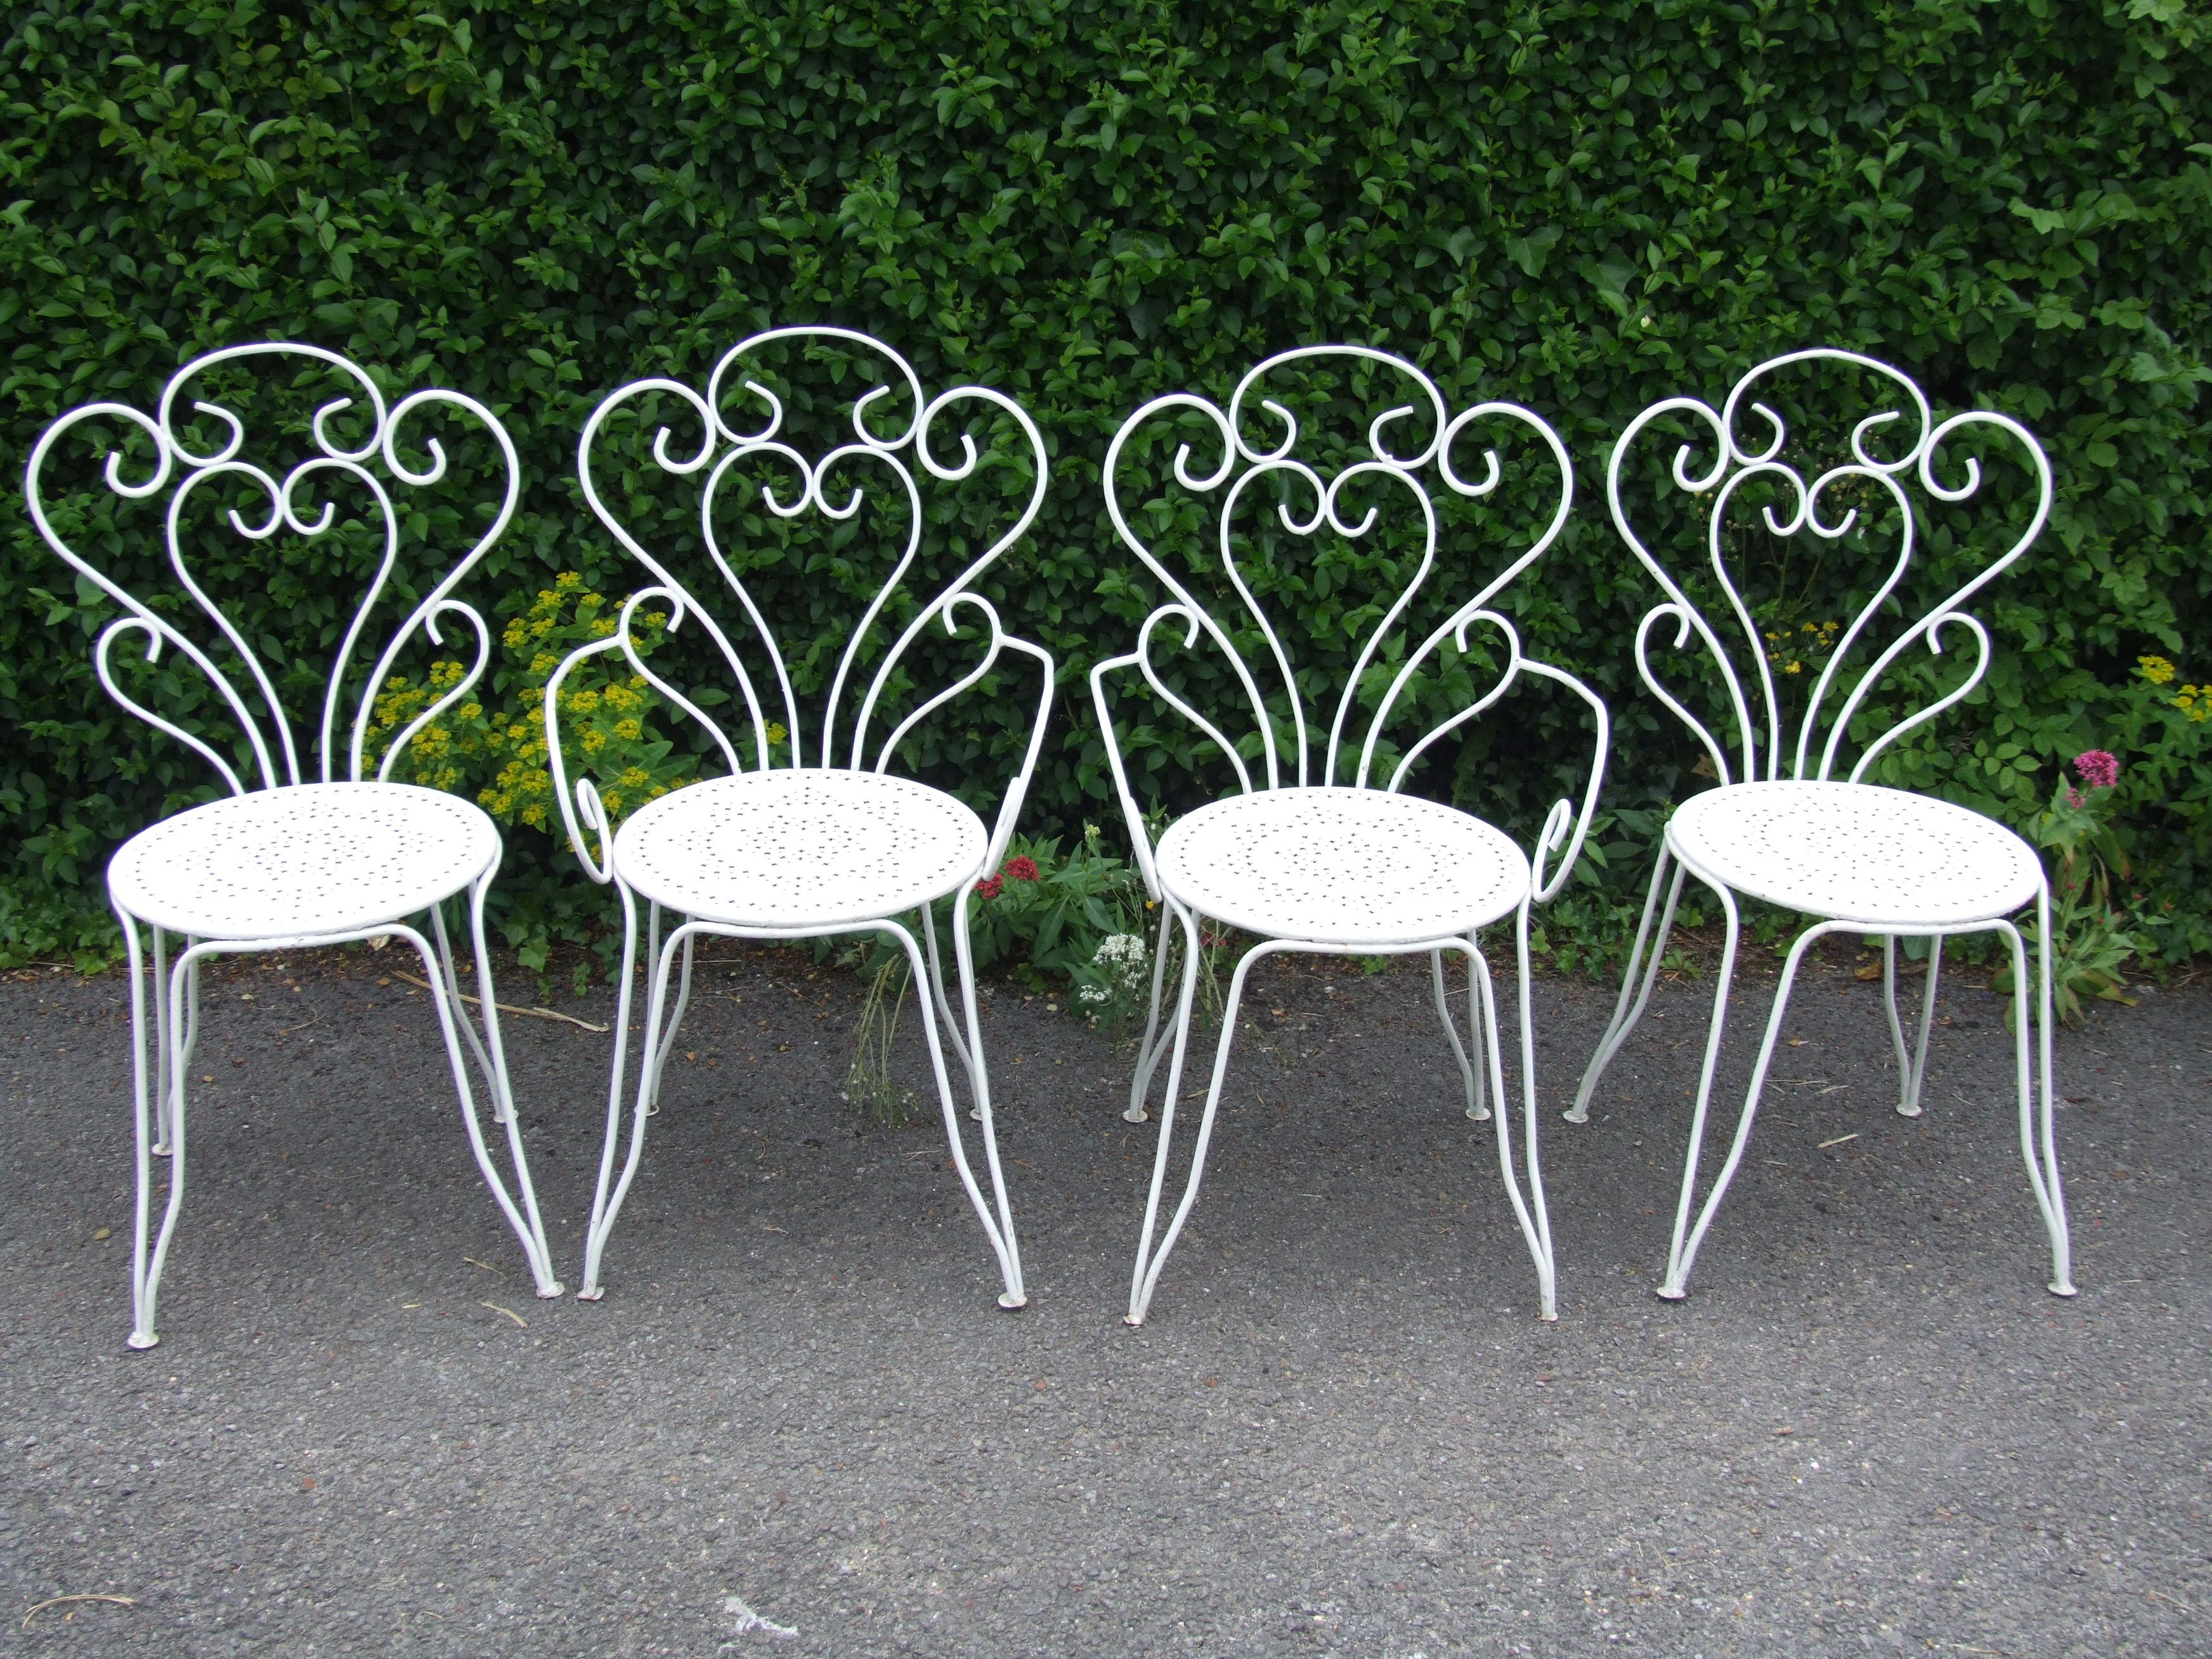 Furniture Garden Chair Vintage White Outdoor